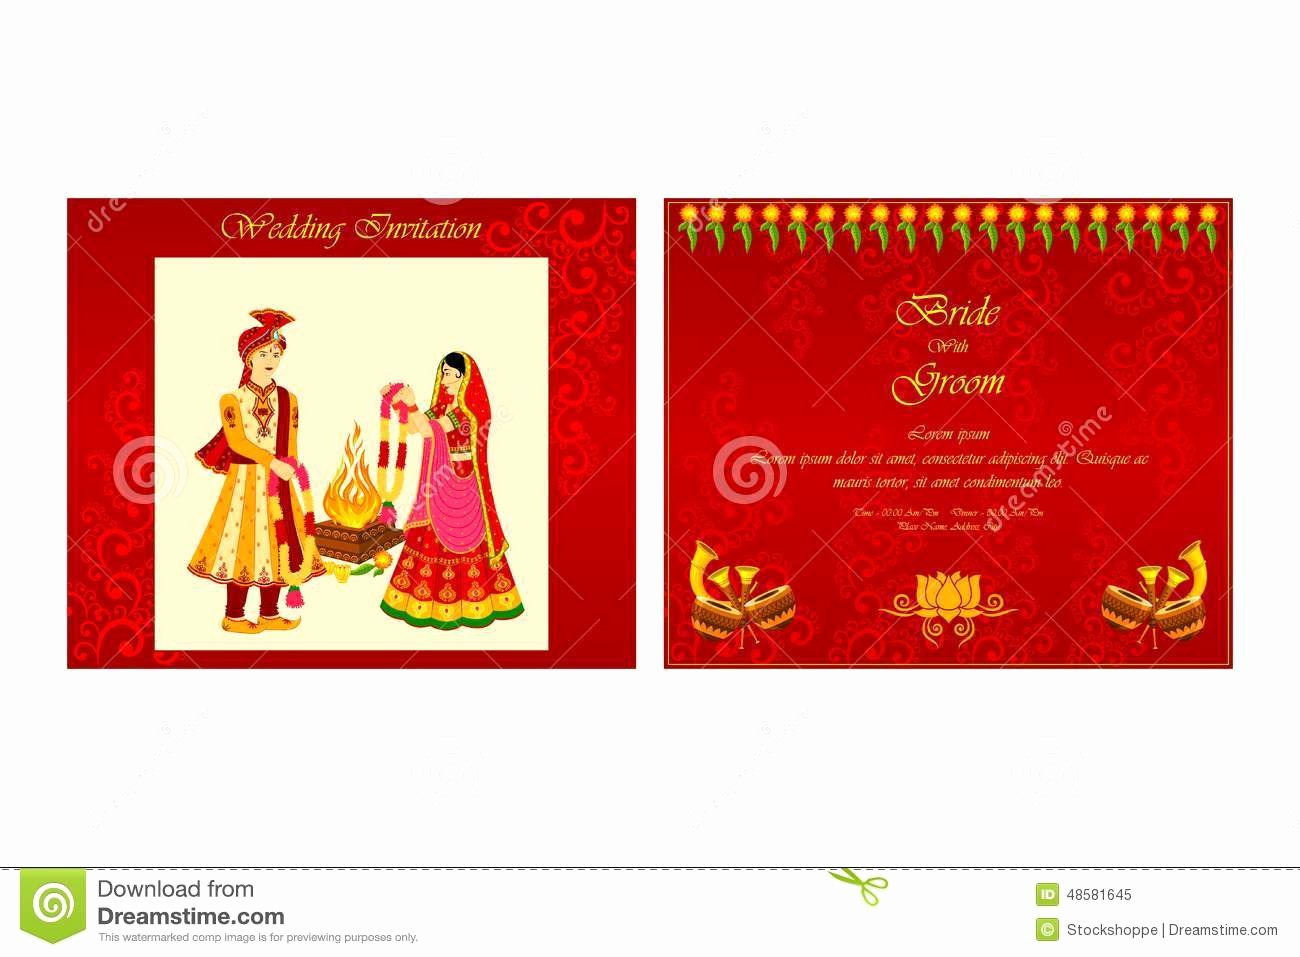 Free Download Indian Wedding Invitation Templates Jin's